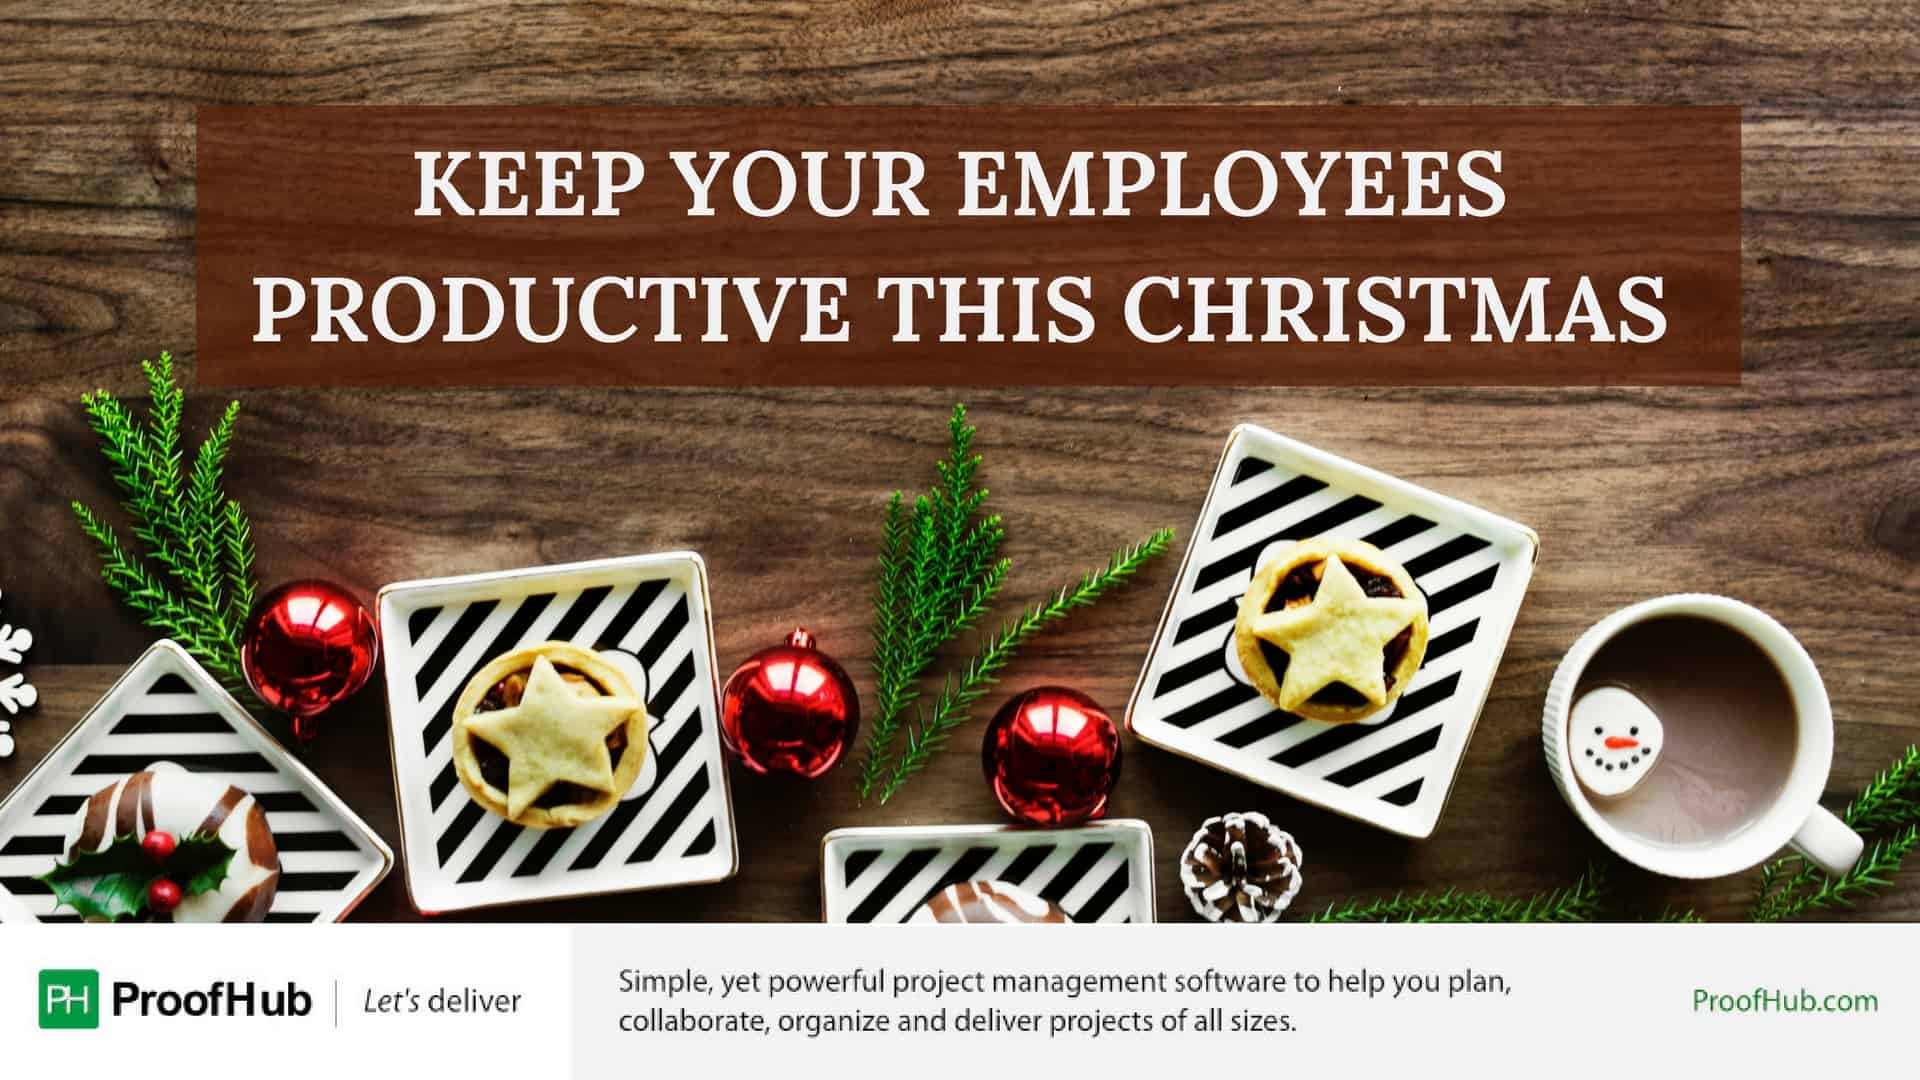 Keep your employees productive this Christmas